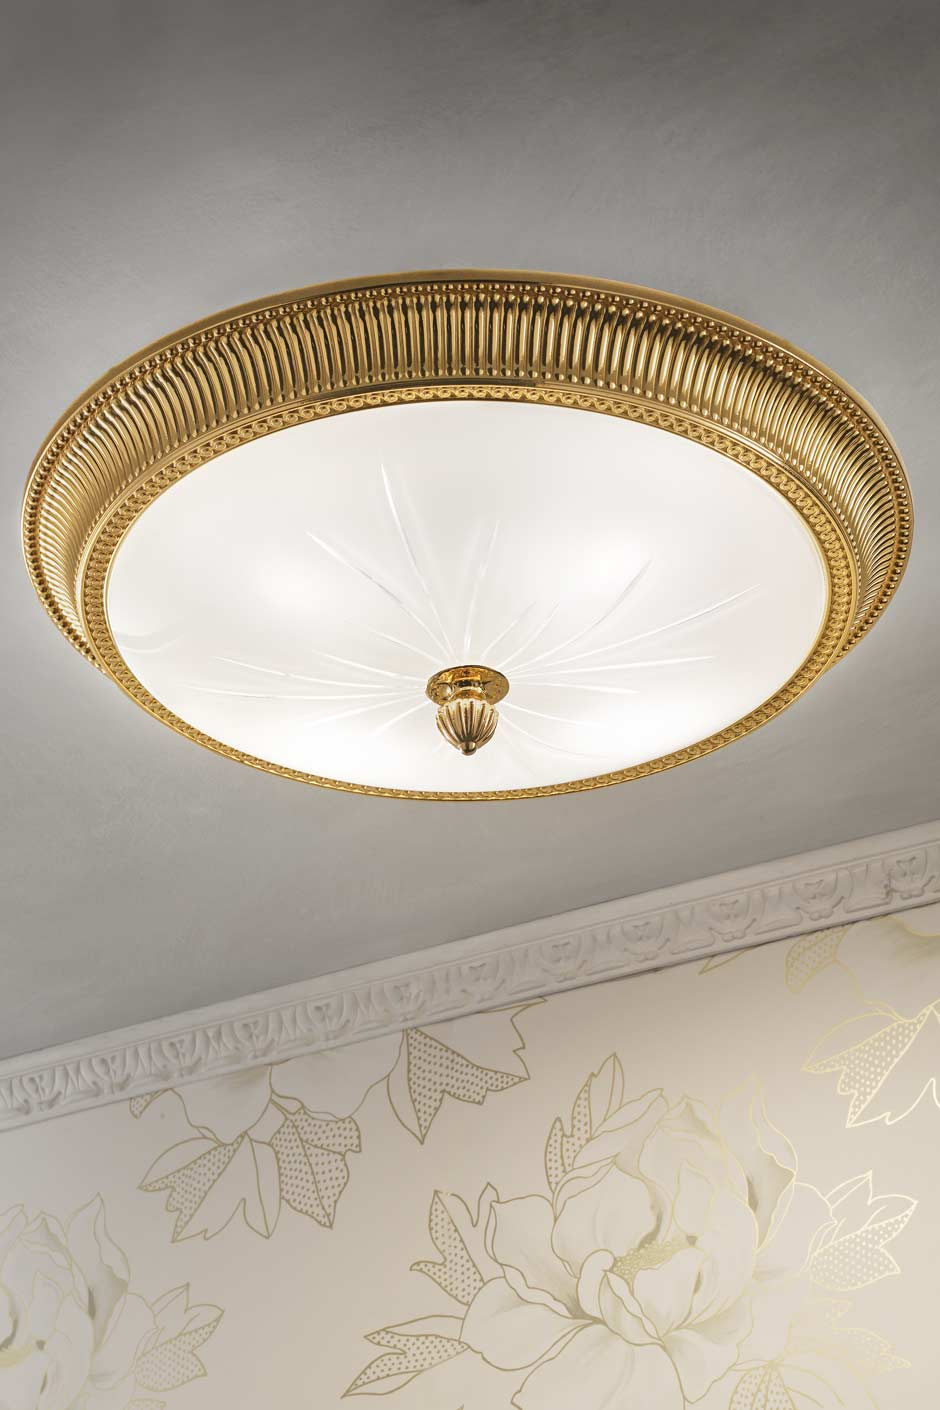 Large Round Gold Plated Bronze Ceiling Light Masiero Murano And Crystal Chandeliers Lamps And Wall Lights Ref 11110647